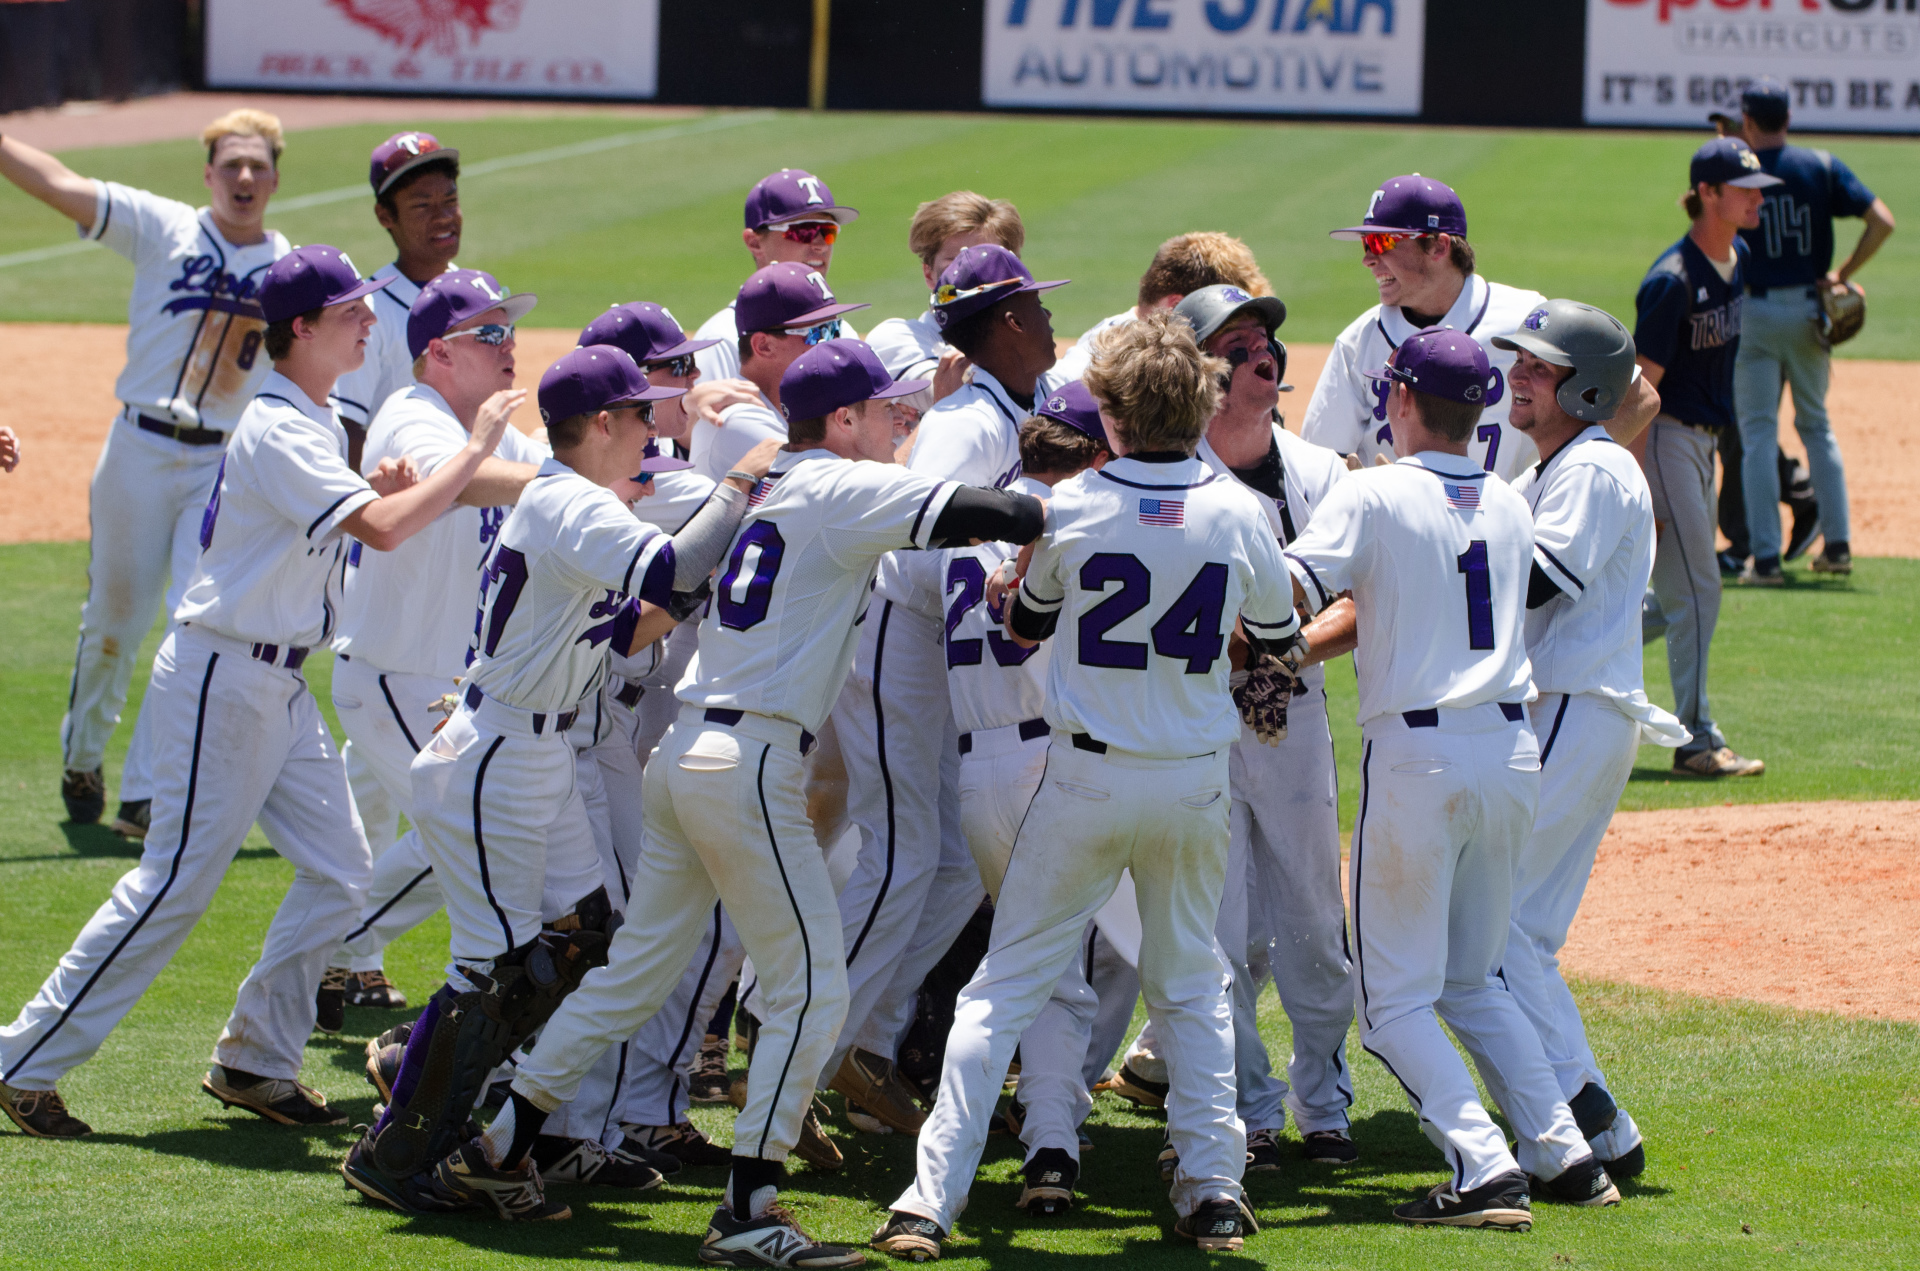 Trinity Christian celebrated a walk off win in Game 2 in extra innings, but fell short in Game 3.